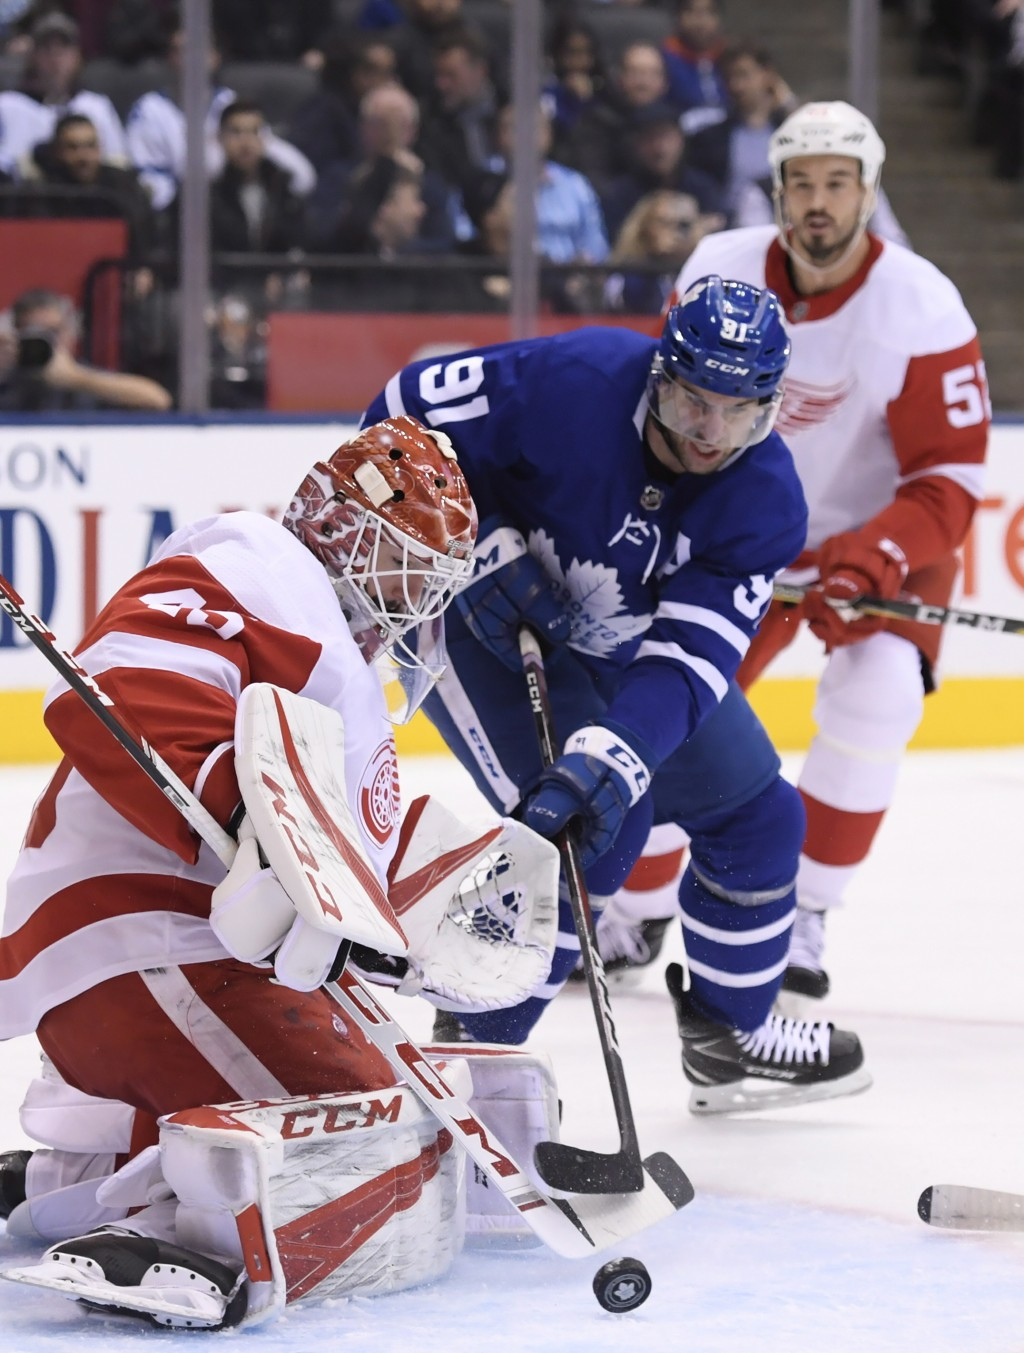 Toronto Maple Leafs center John Tavares (91) is stopped by Detroit Red Wings goaltender Jonathan Bernier (45) as Red Wings defenseman Jonathan Ericsso